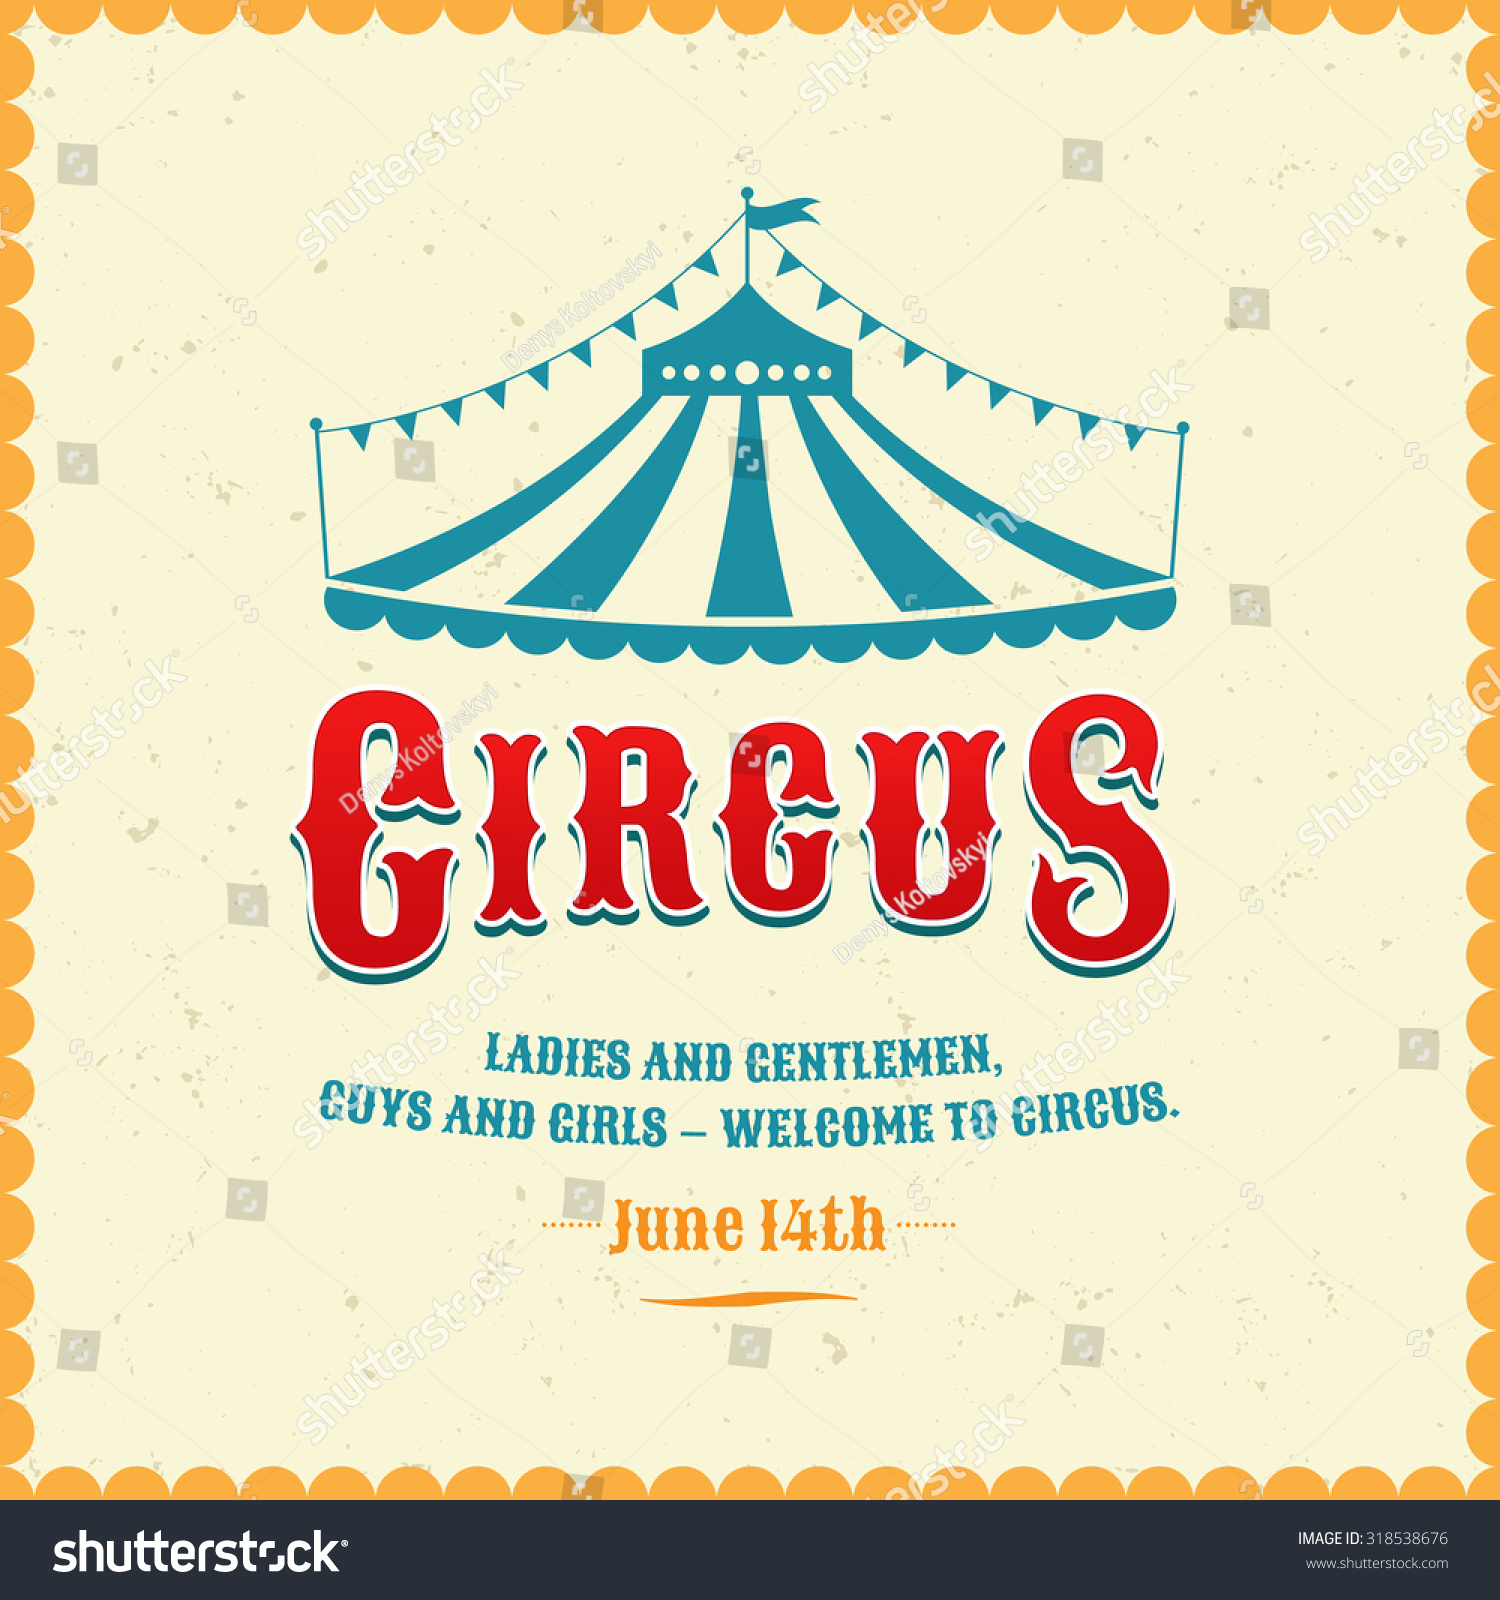 Cute Elephant Design Wallpaper Vintage Poster Circus Silhouette Circus Tent Stock Vector